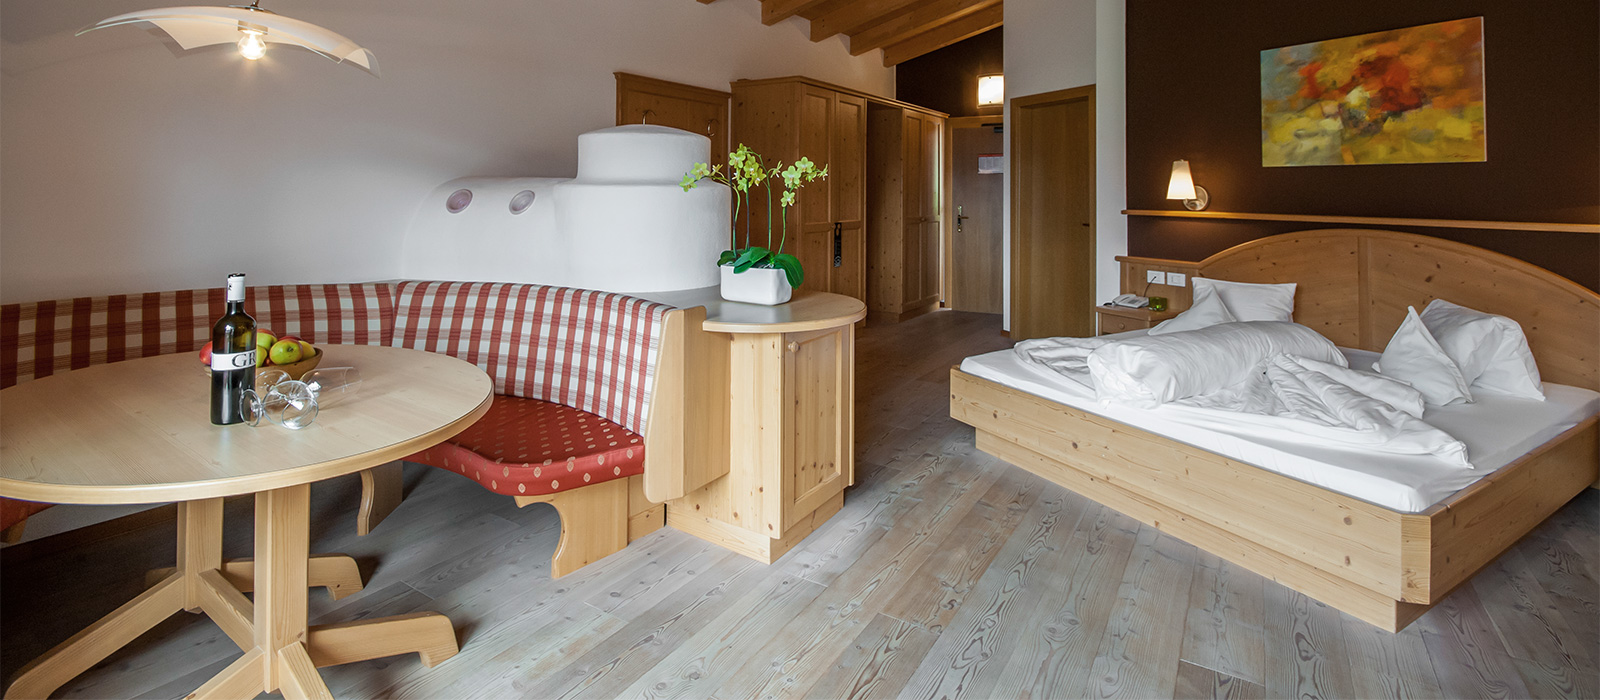 Romantic Honeymoon Suite In Schenna Merano South Tyrol Italy